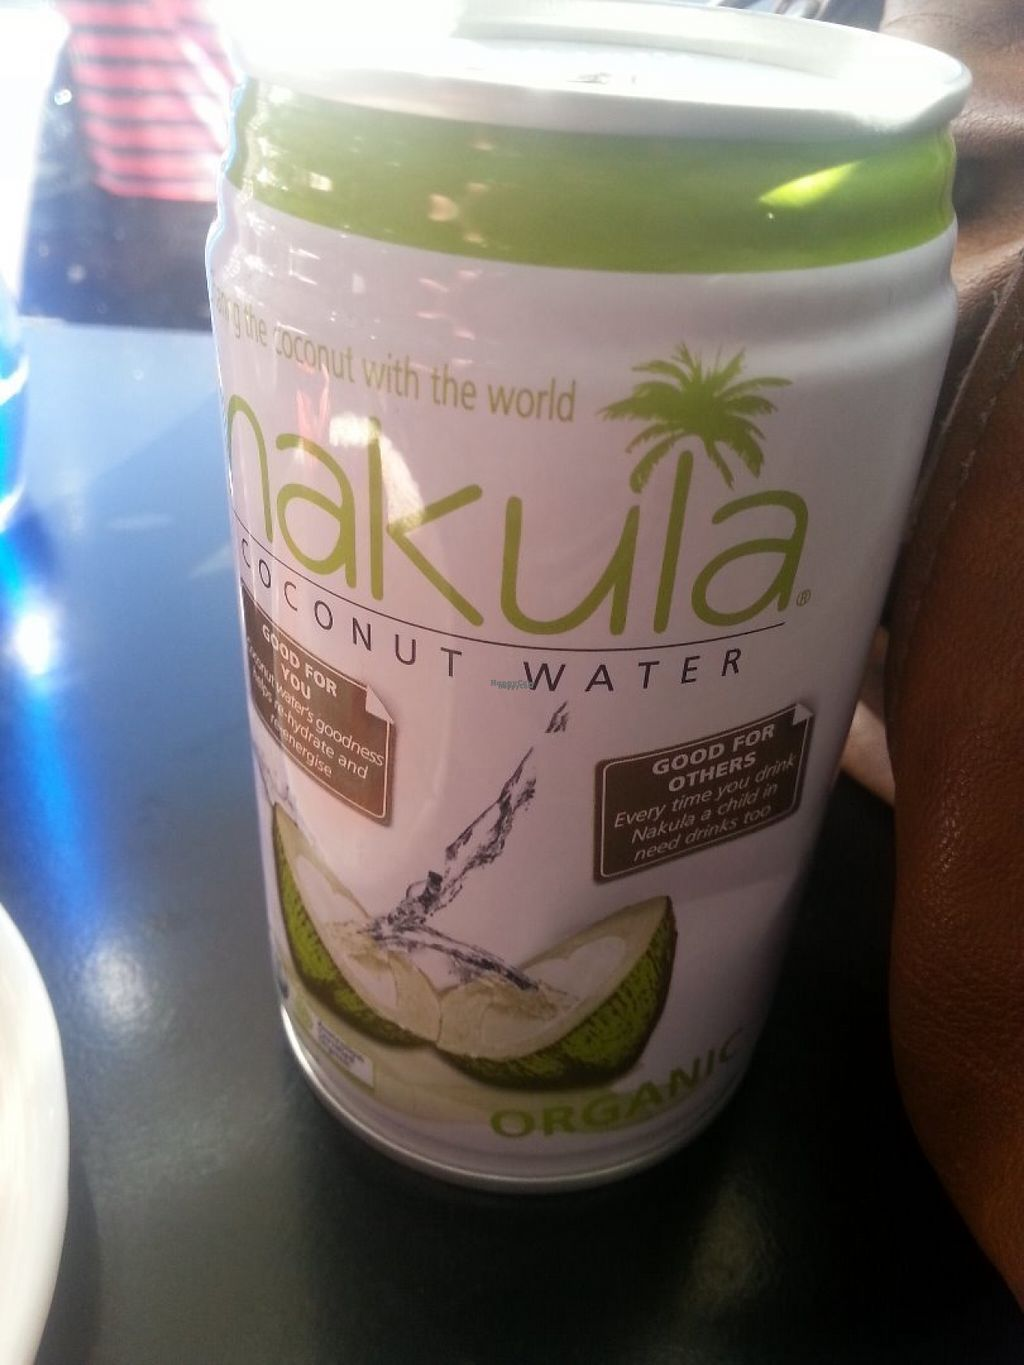 """Photo of Pana Chocolate  by <a href=""""/members/profile/KatieBatty"""">KatieBatty</a> <br/>Coconut water <br/> August 1, 2016  - <a href='/contact/abuse/image/50065/164035'>Report</a>"""